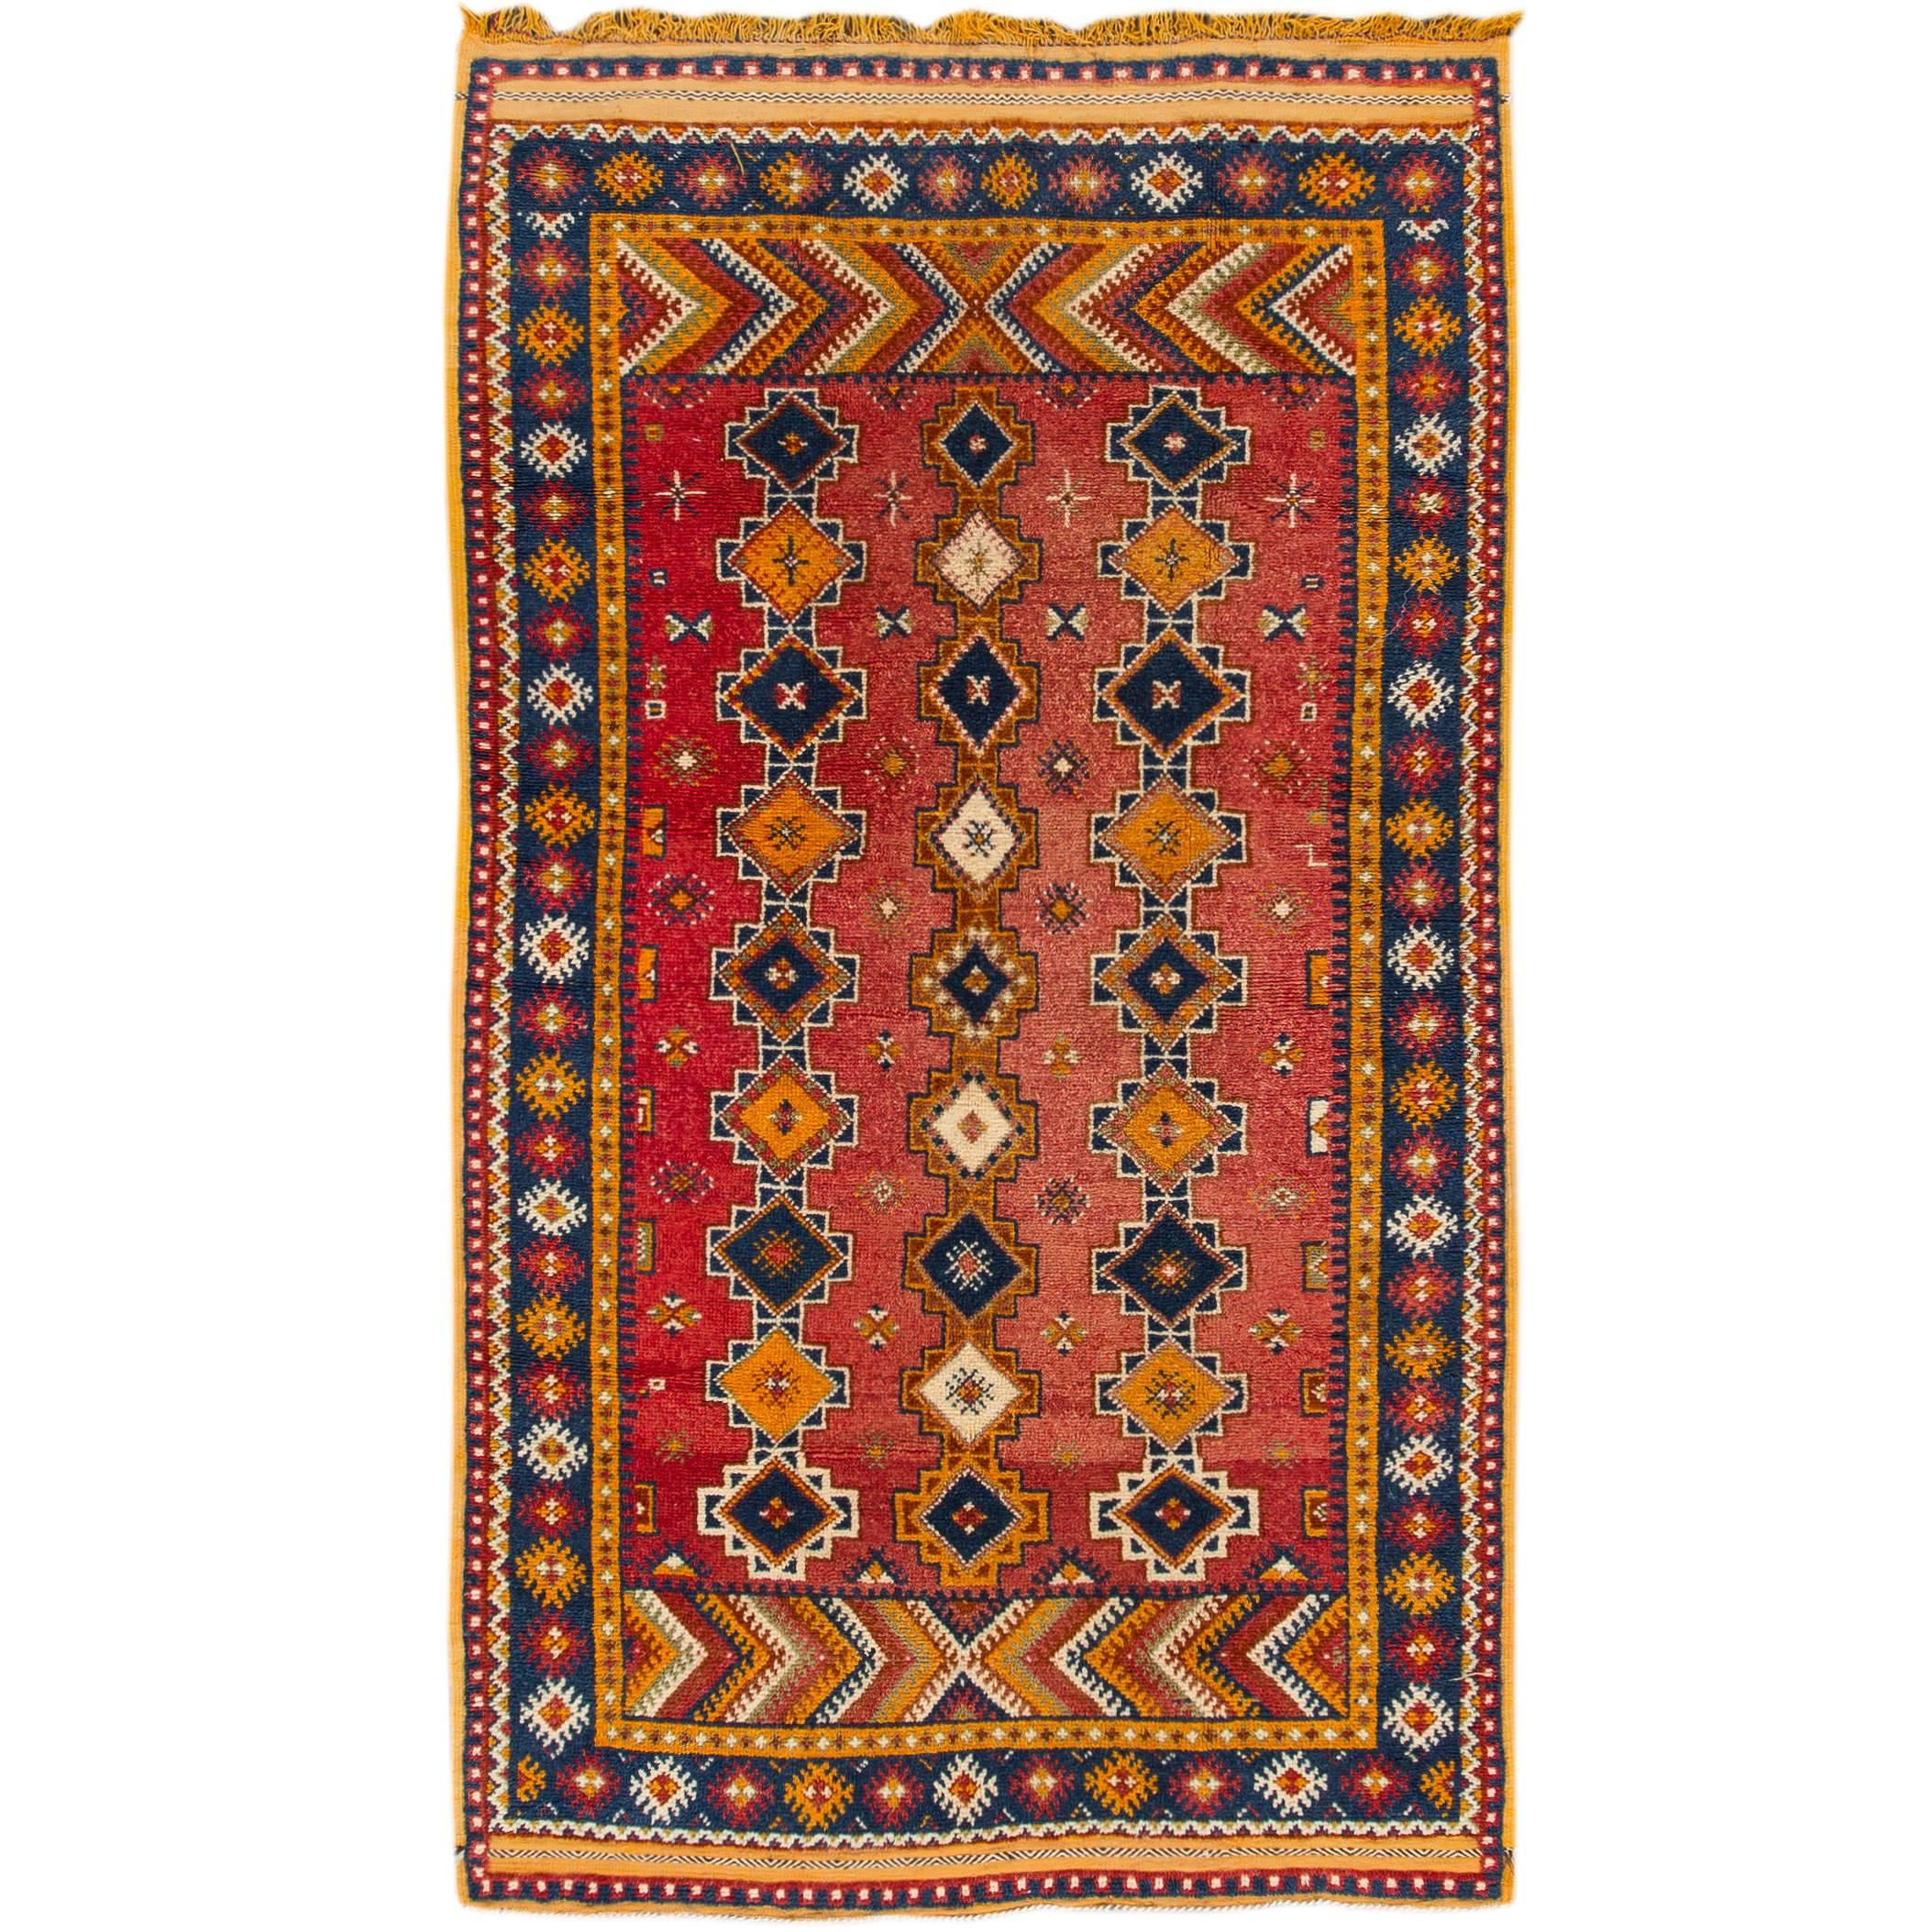 Early 20th Century Antique Moroccan Tribal Wool Rug